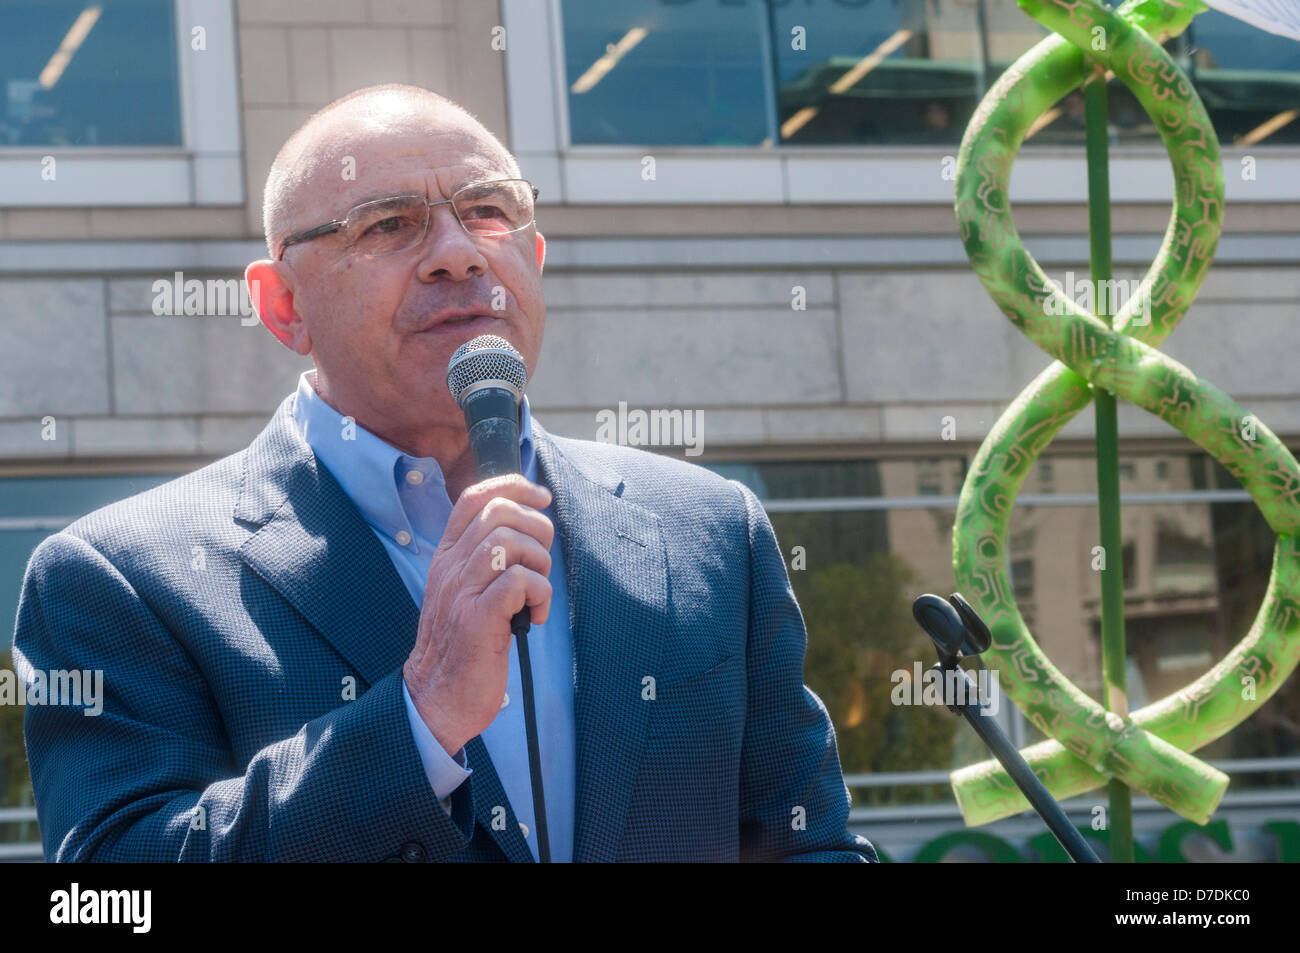 New York, USA. 4th April, 2013. NYC Mayoral Candidate Sal Albanese speaking at the Million Marijuana Rally. Pot - Stock Image